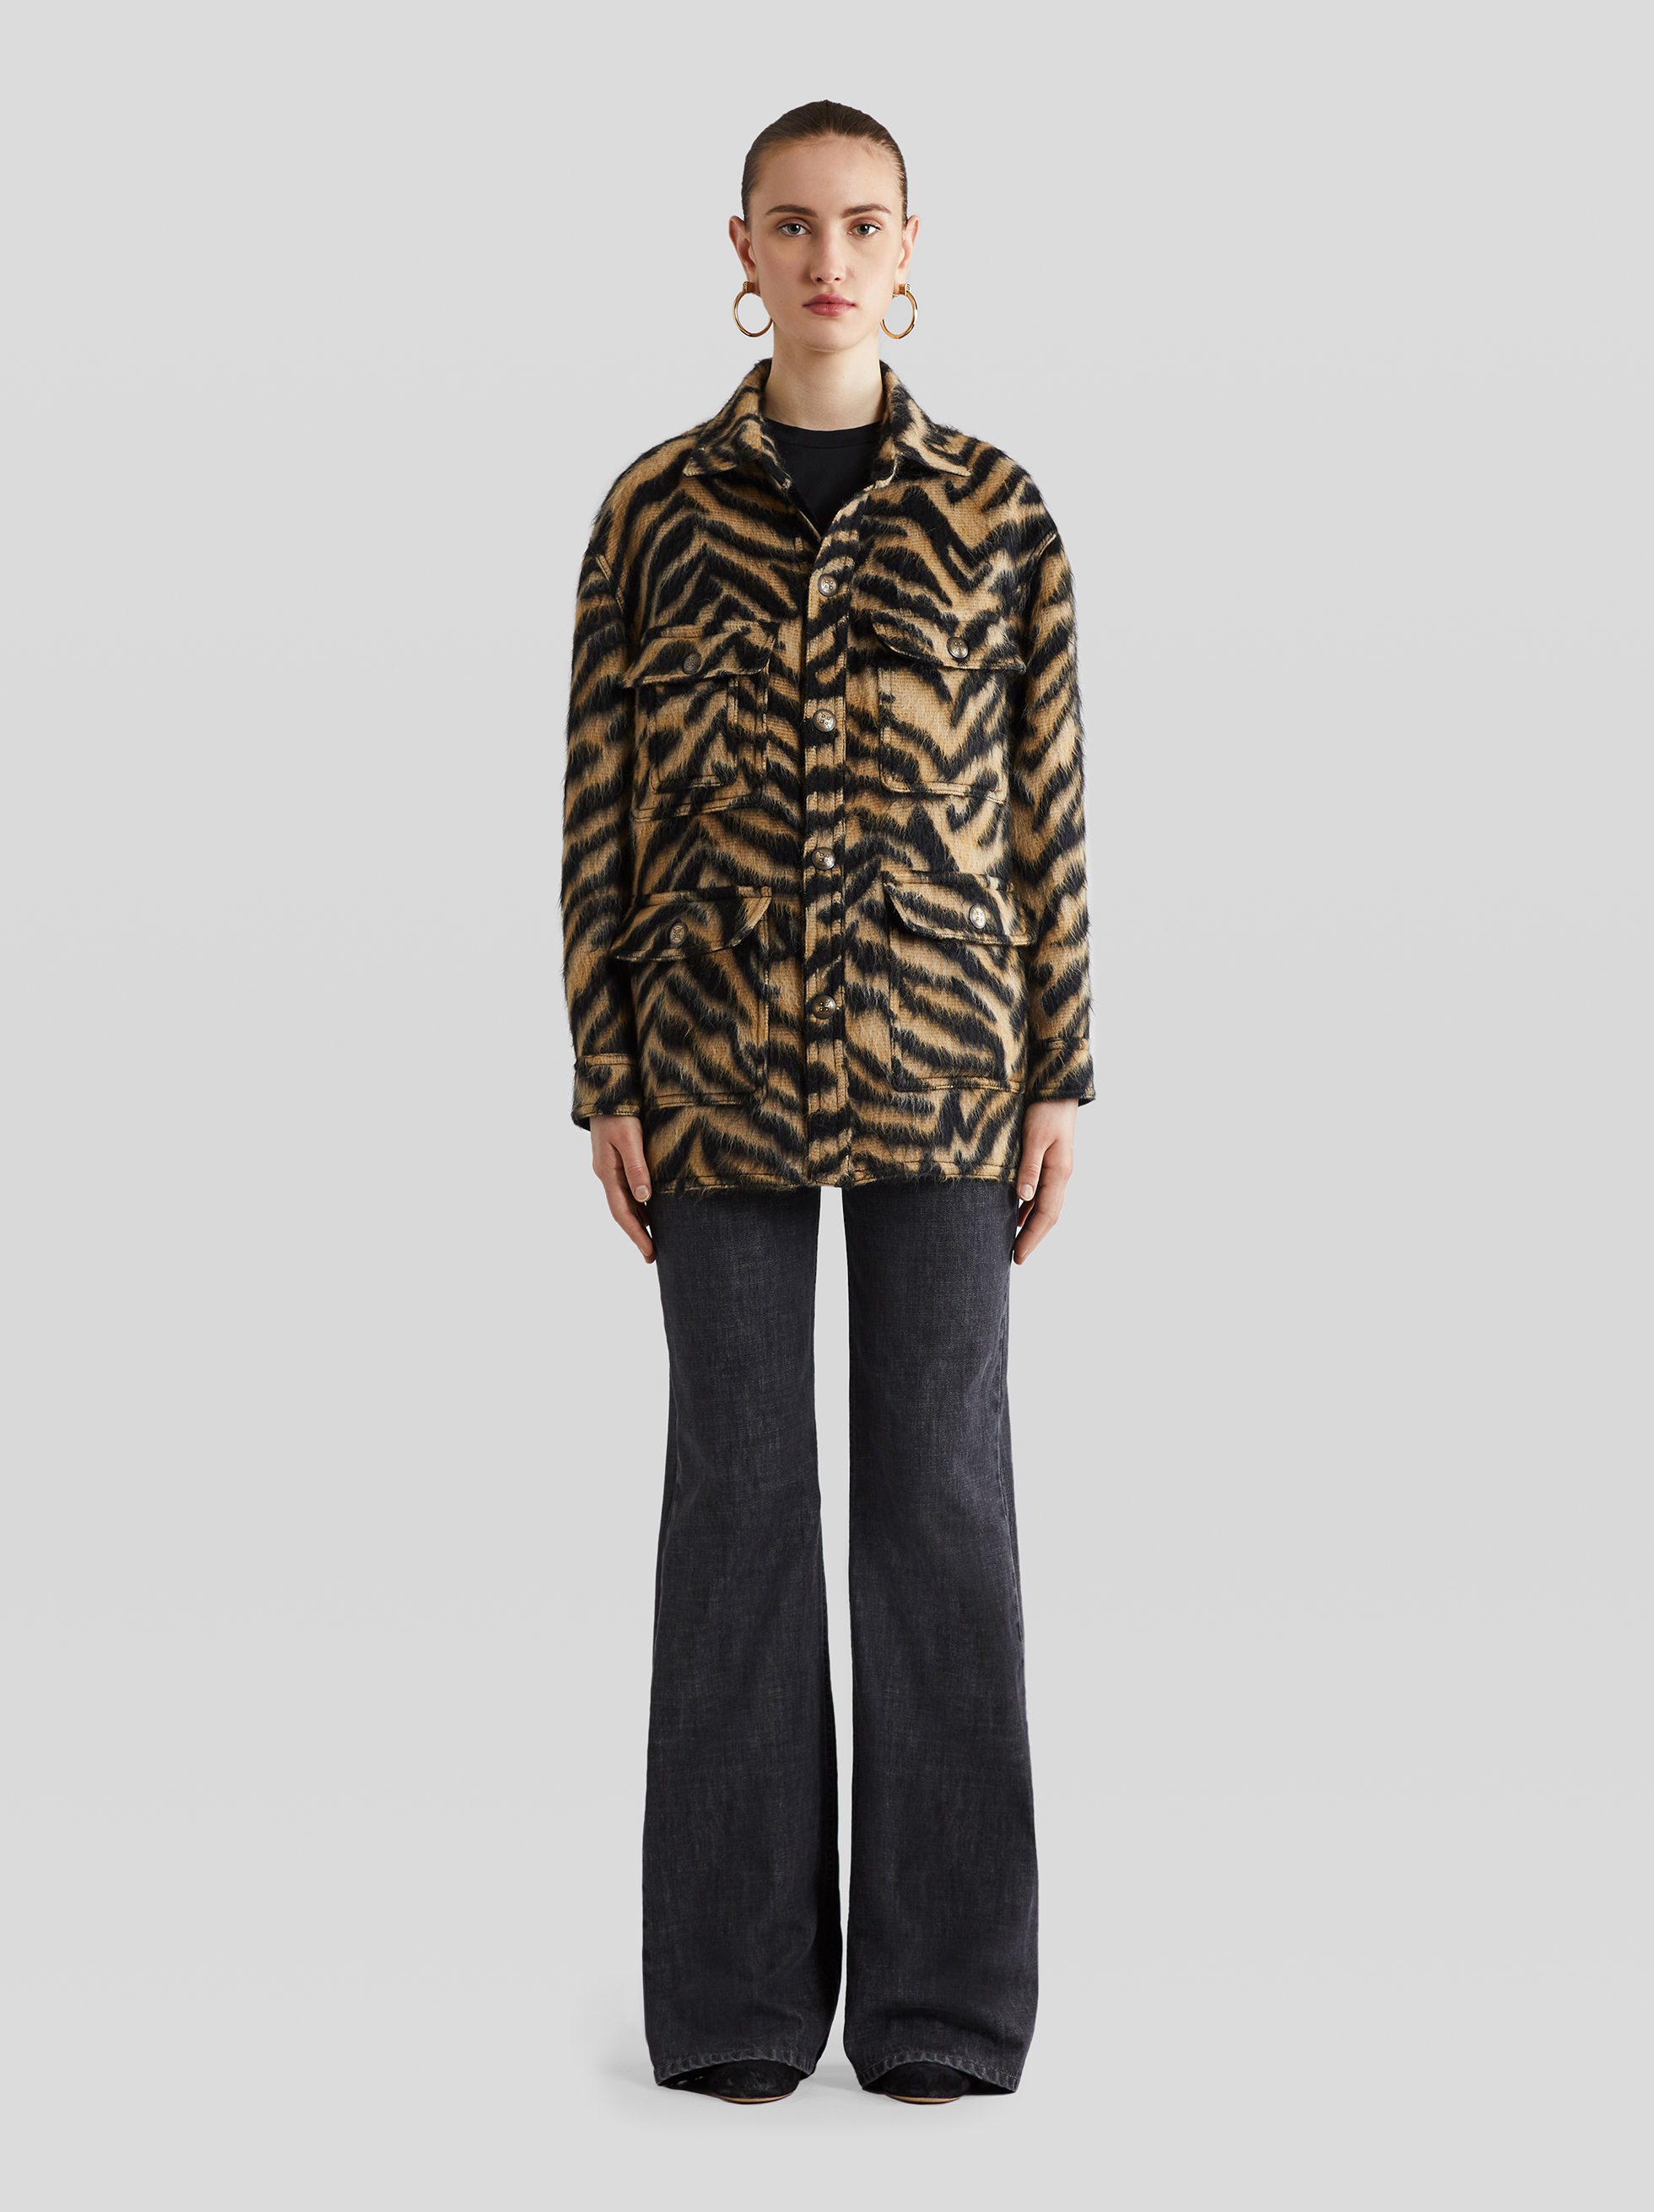 ANIMAL PRINT WOOL AND ALPACA SAFARI JACKET